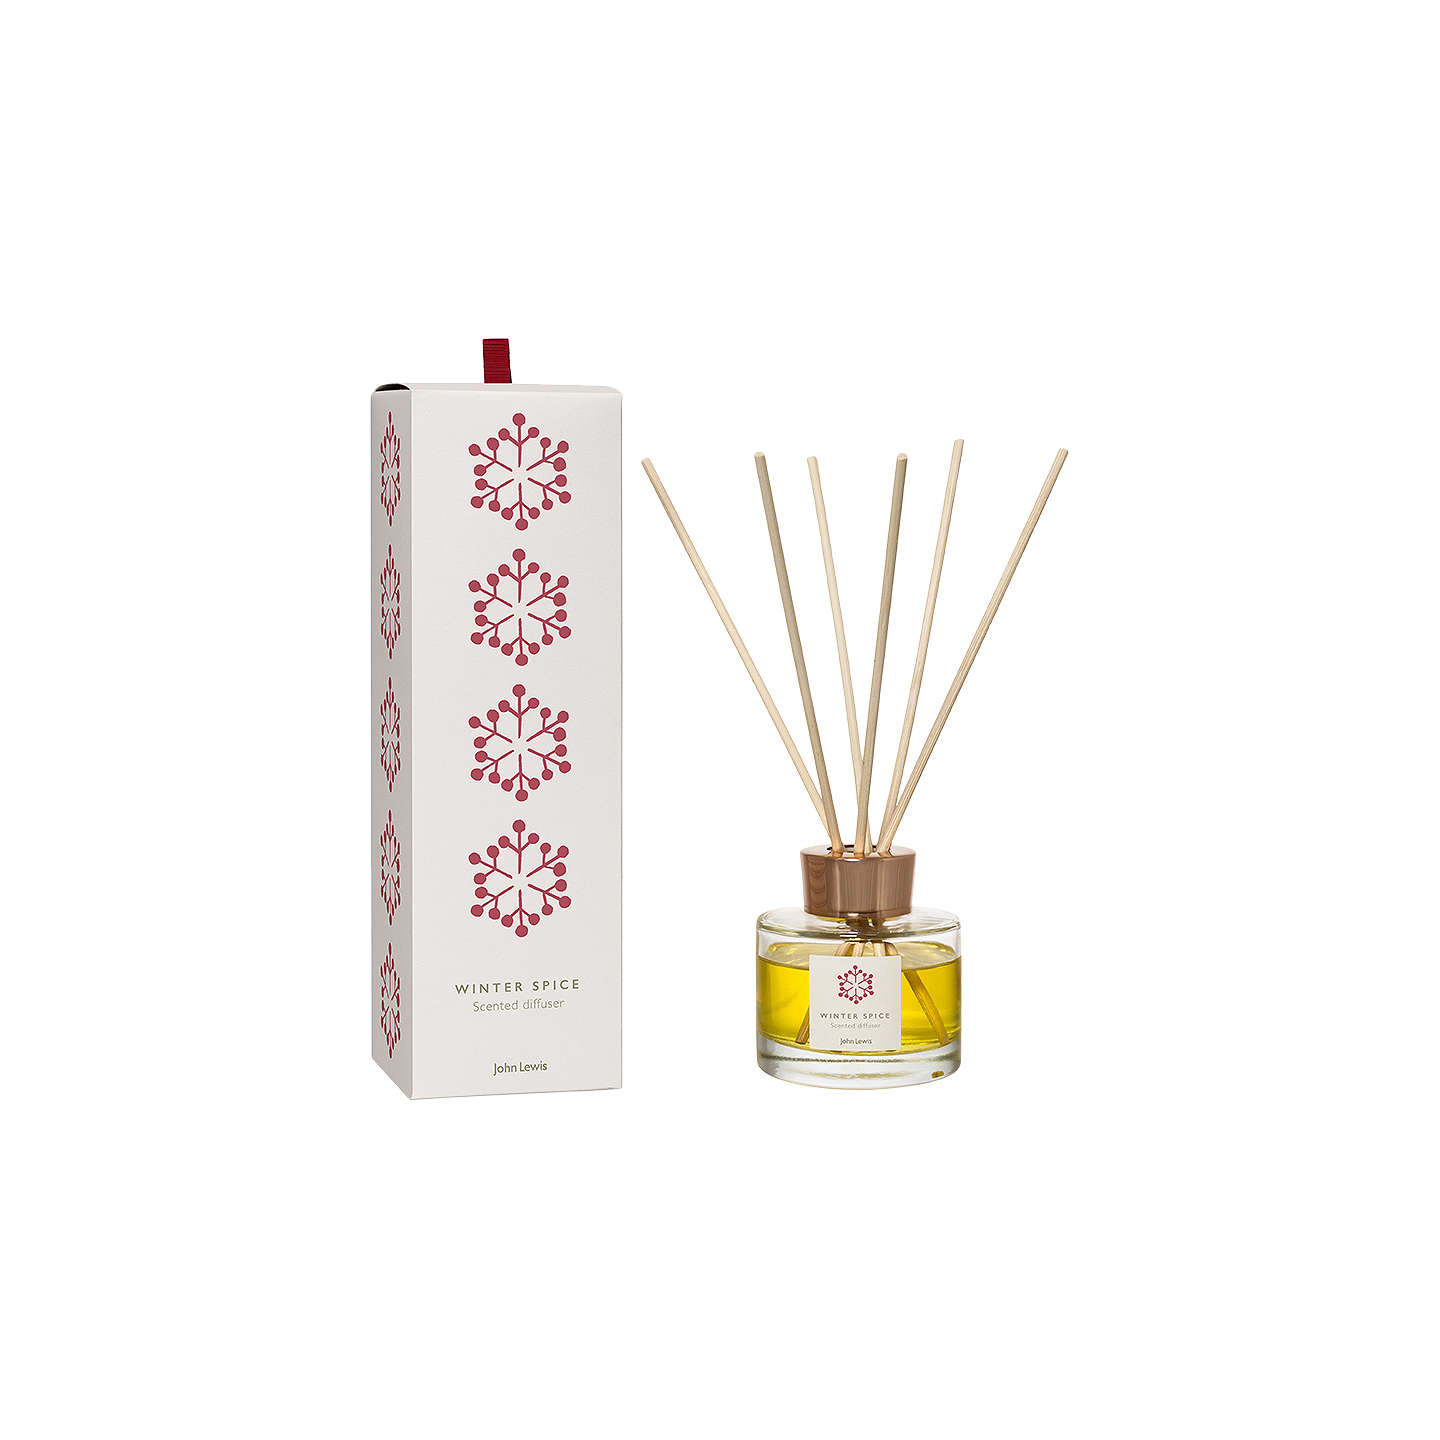 Offer: John Lewis Winter Spice Diffuser at John Lewis